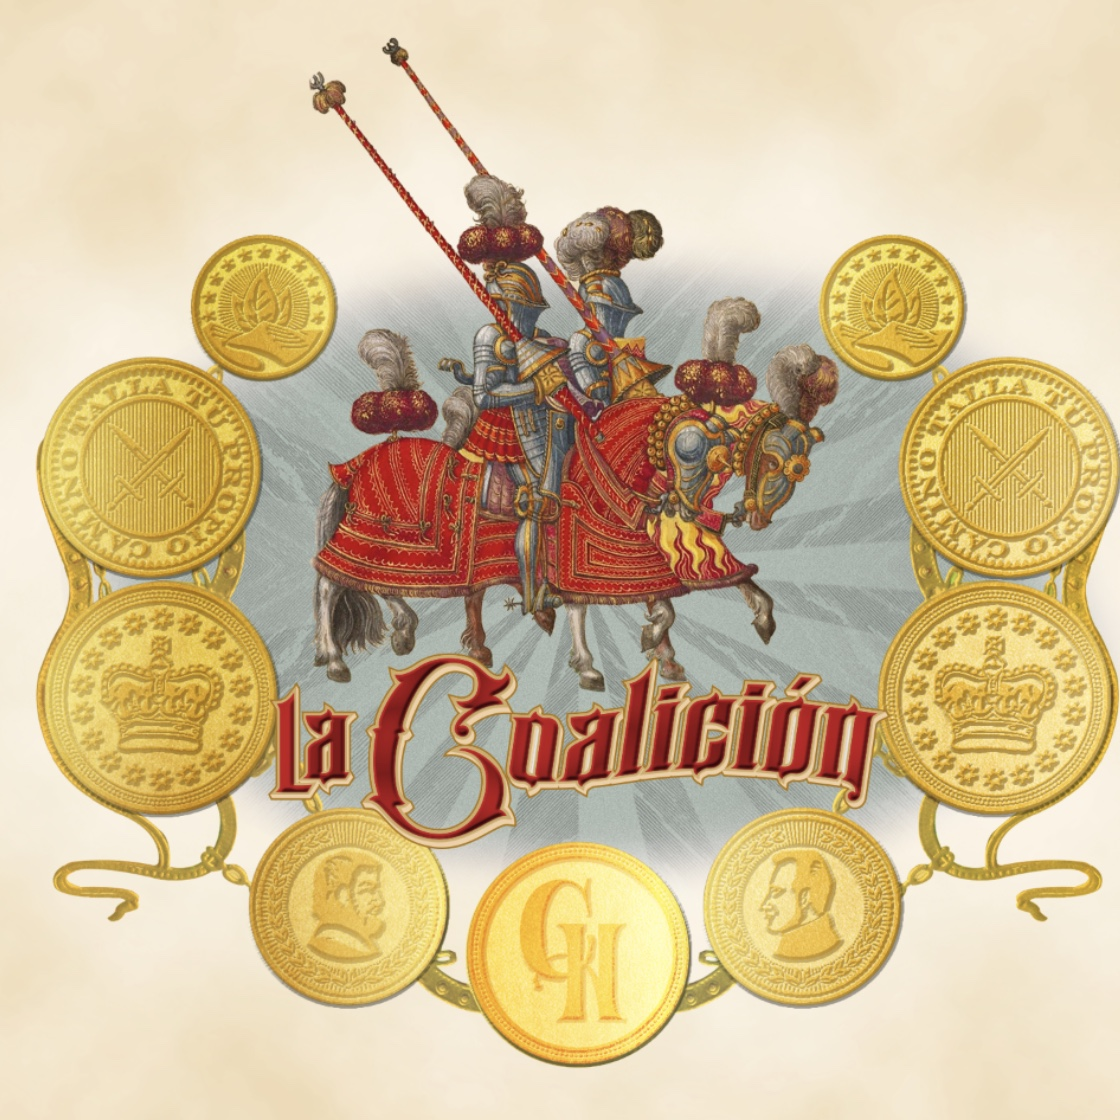 Cigar News: Crowned Heads La Coalición to Debut at 2019 IPCPR